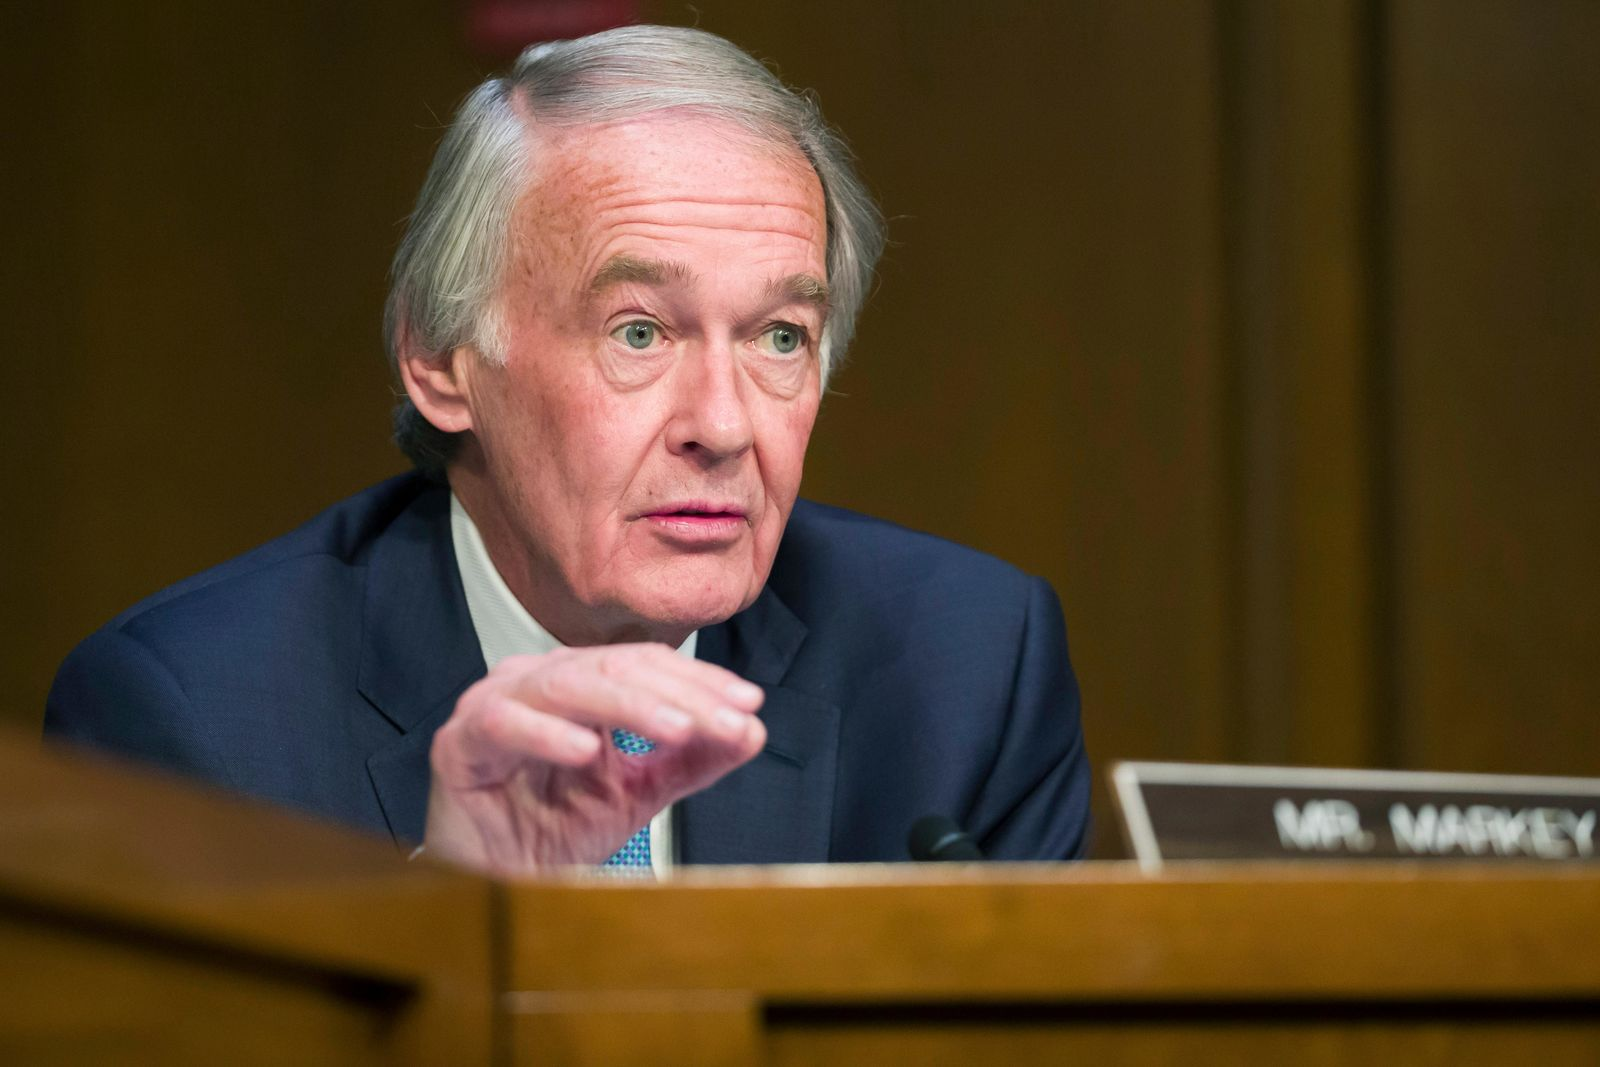 FILE - In this March 27, 2019 file photo, Sen. Ed Markey, D-Mass., speaks during a Senate Transportation subcommittee on commercial airline safety, on Capitol Hill in Washington. (AP Photo/Alex Brandon, File)